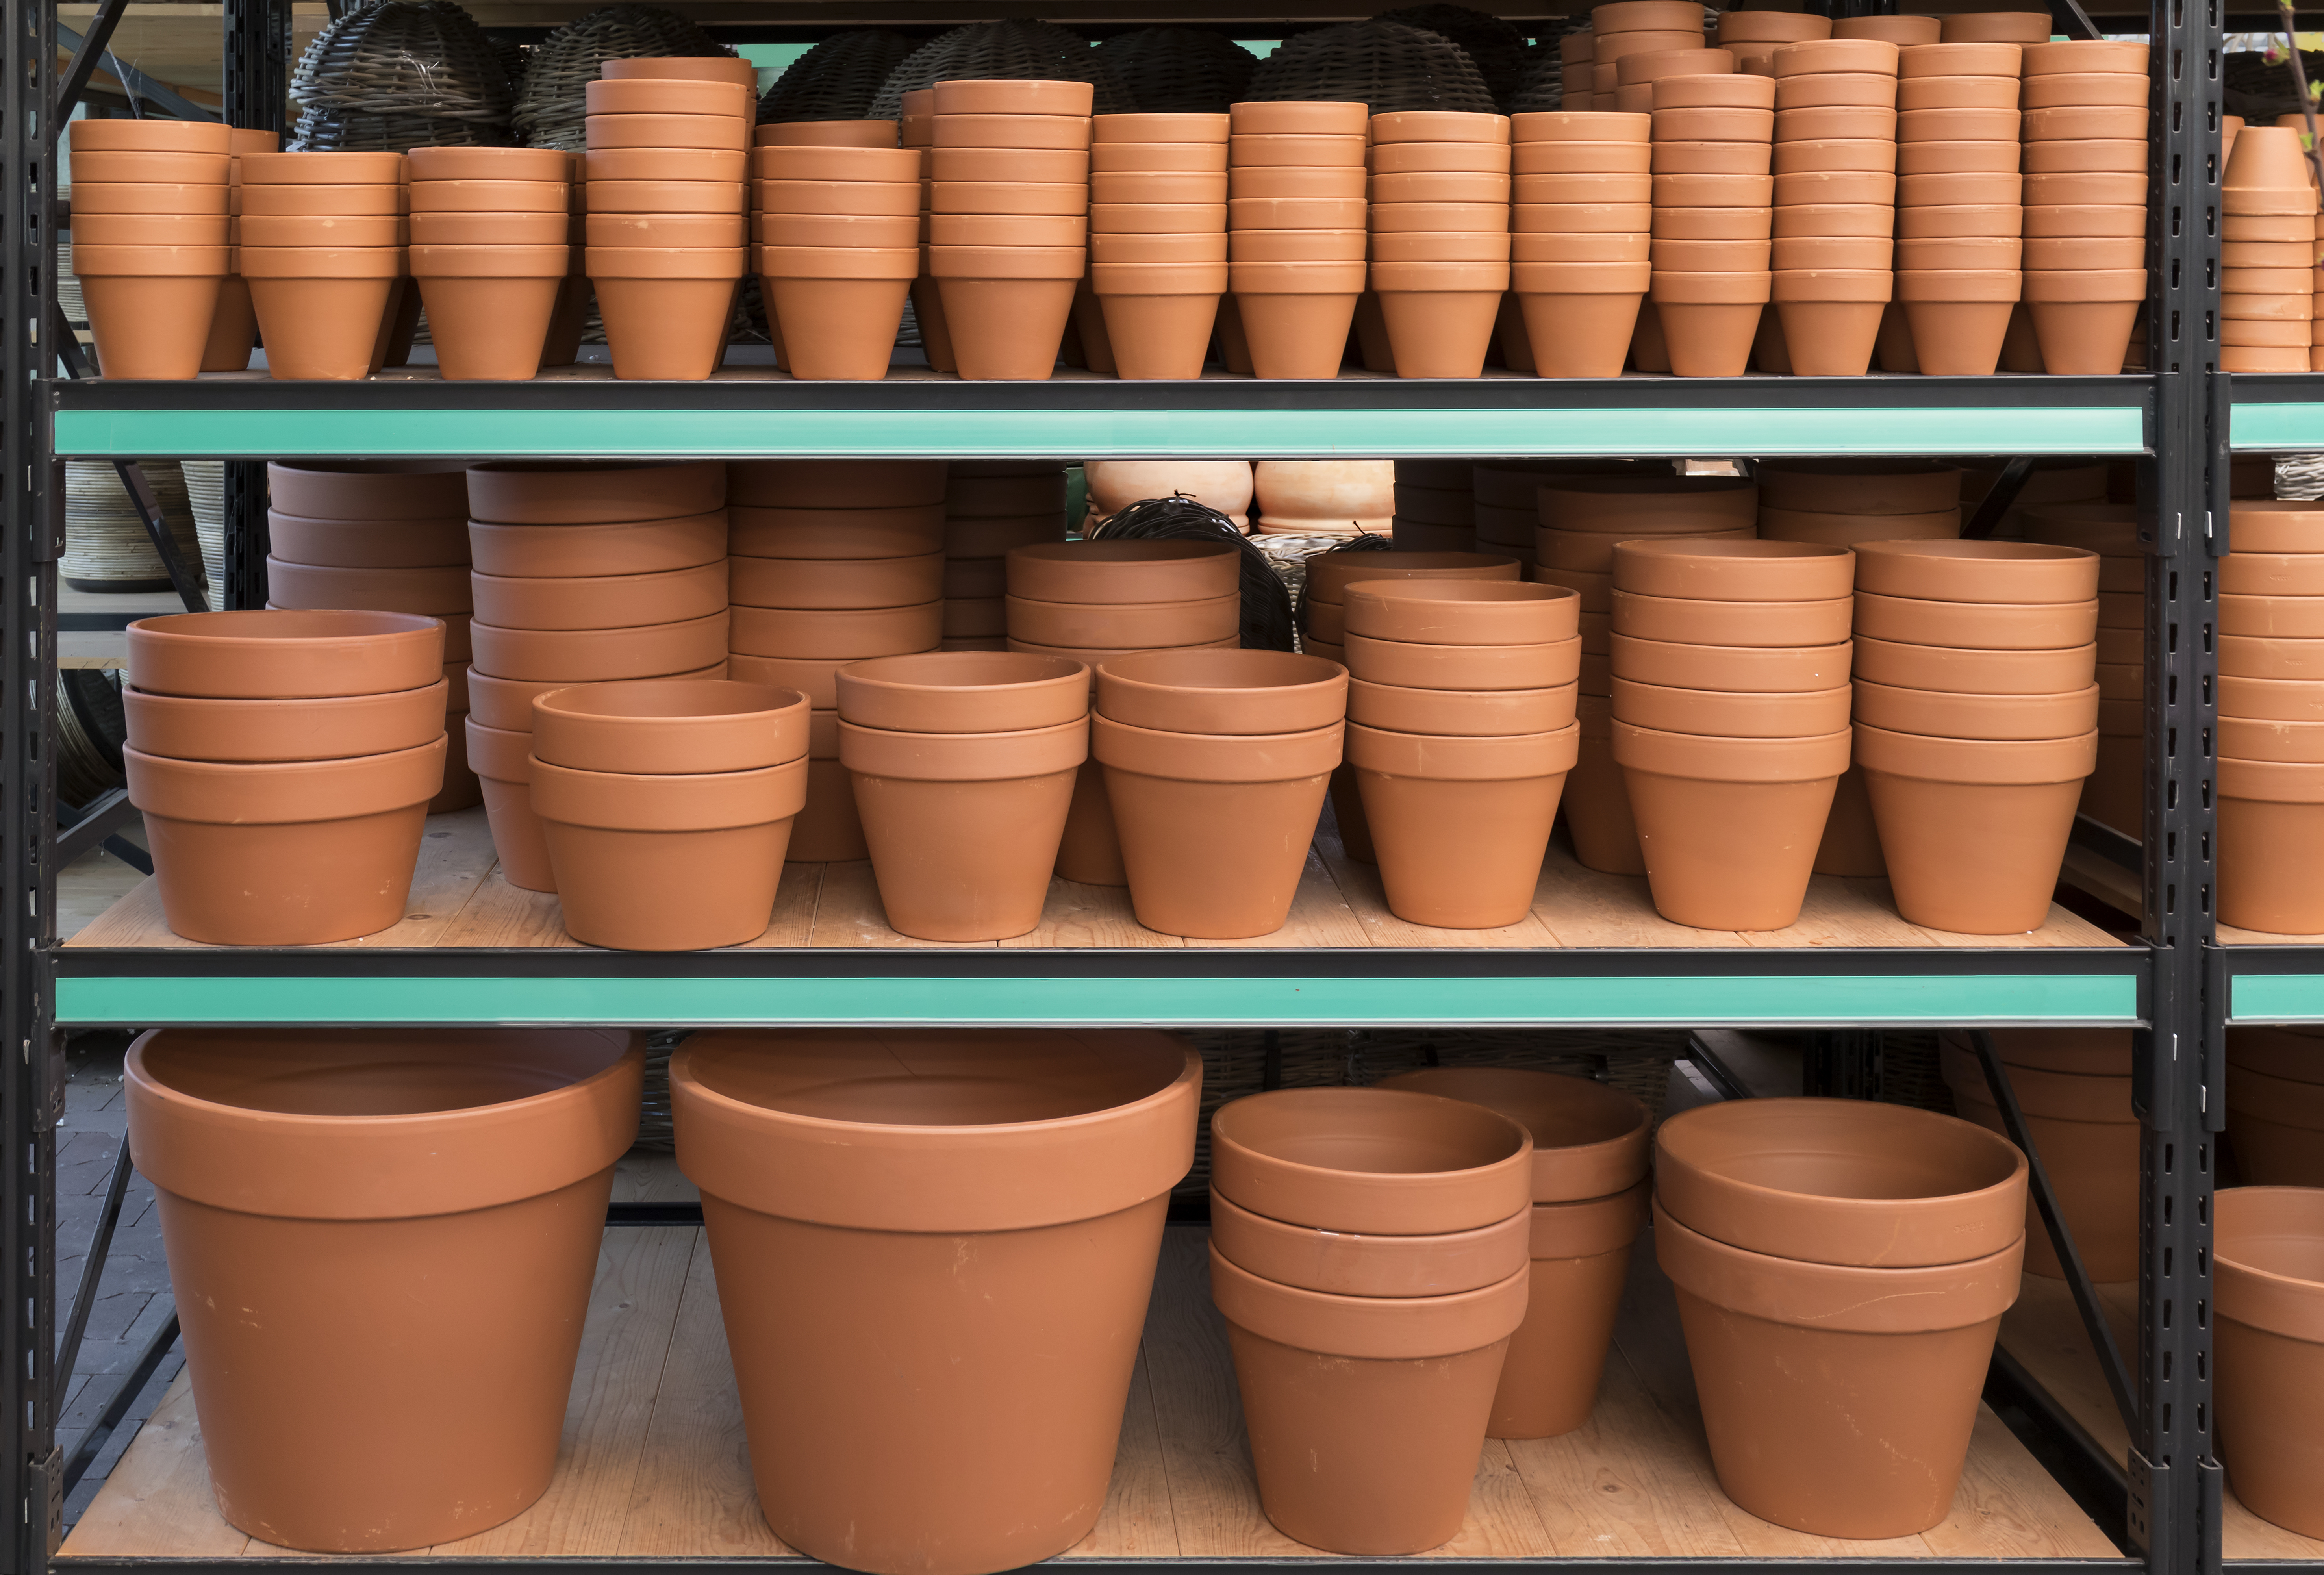 Shelves of different sized tan pots.